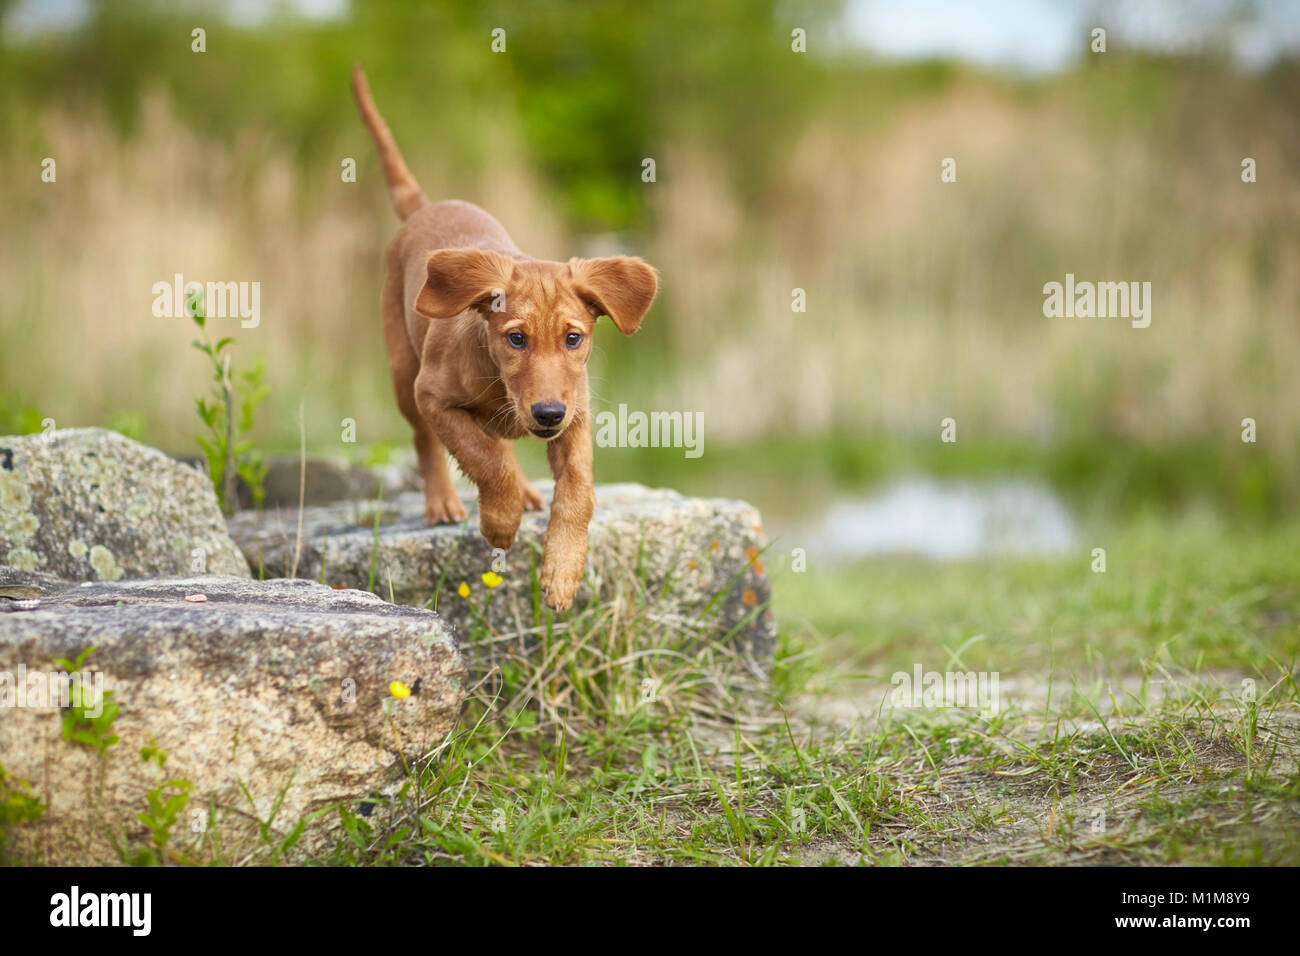 Golden Retriever. Puppy jumping from a rock. Germany. - Stock Image